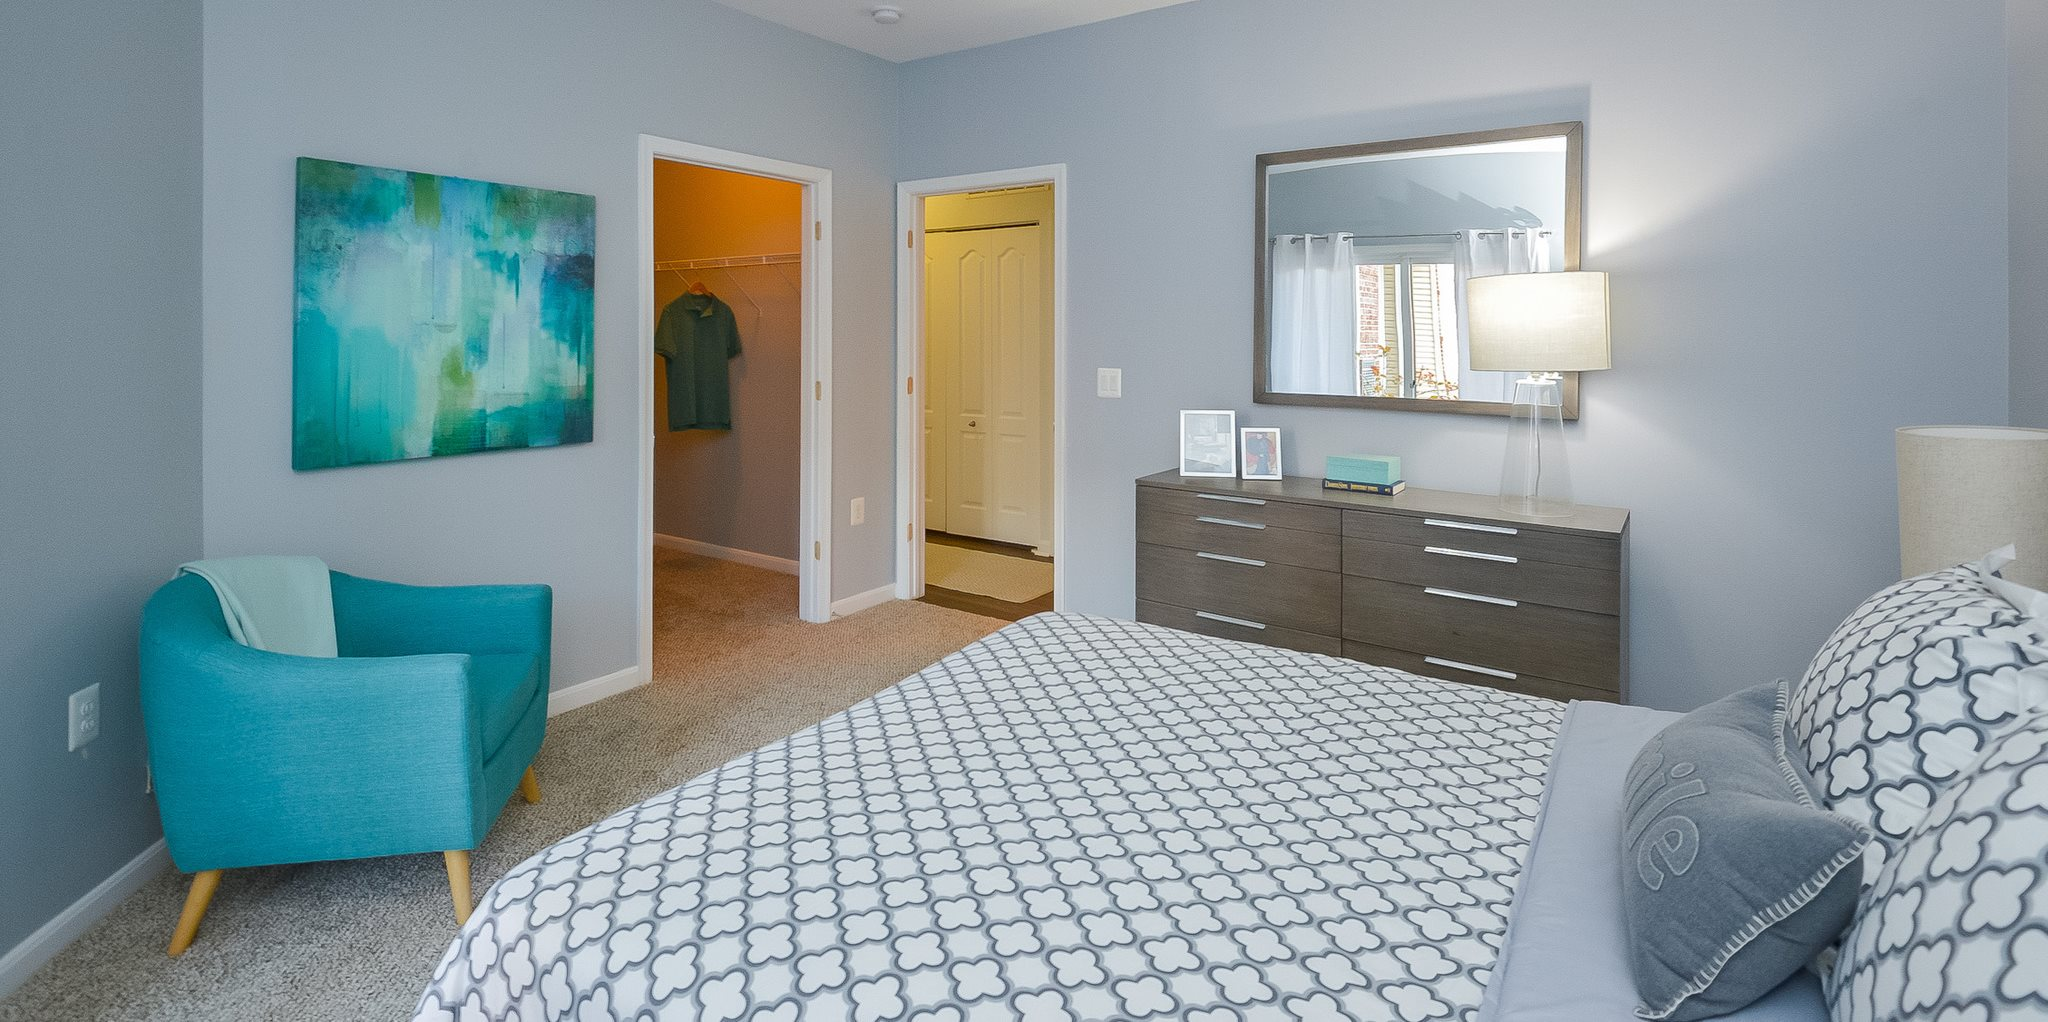 model apartment, bedroom with view of bath and closet entry